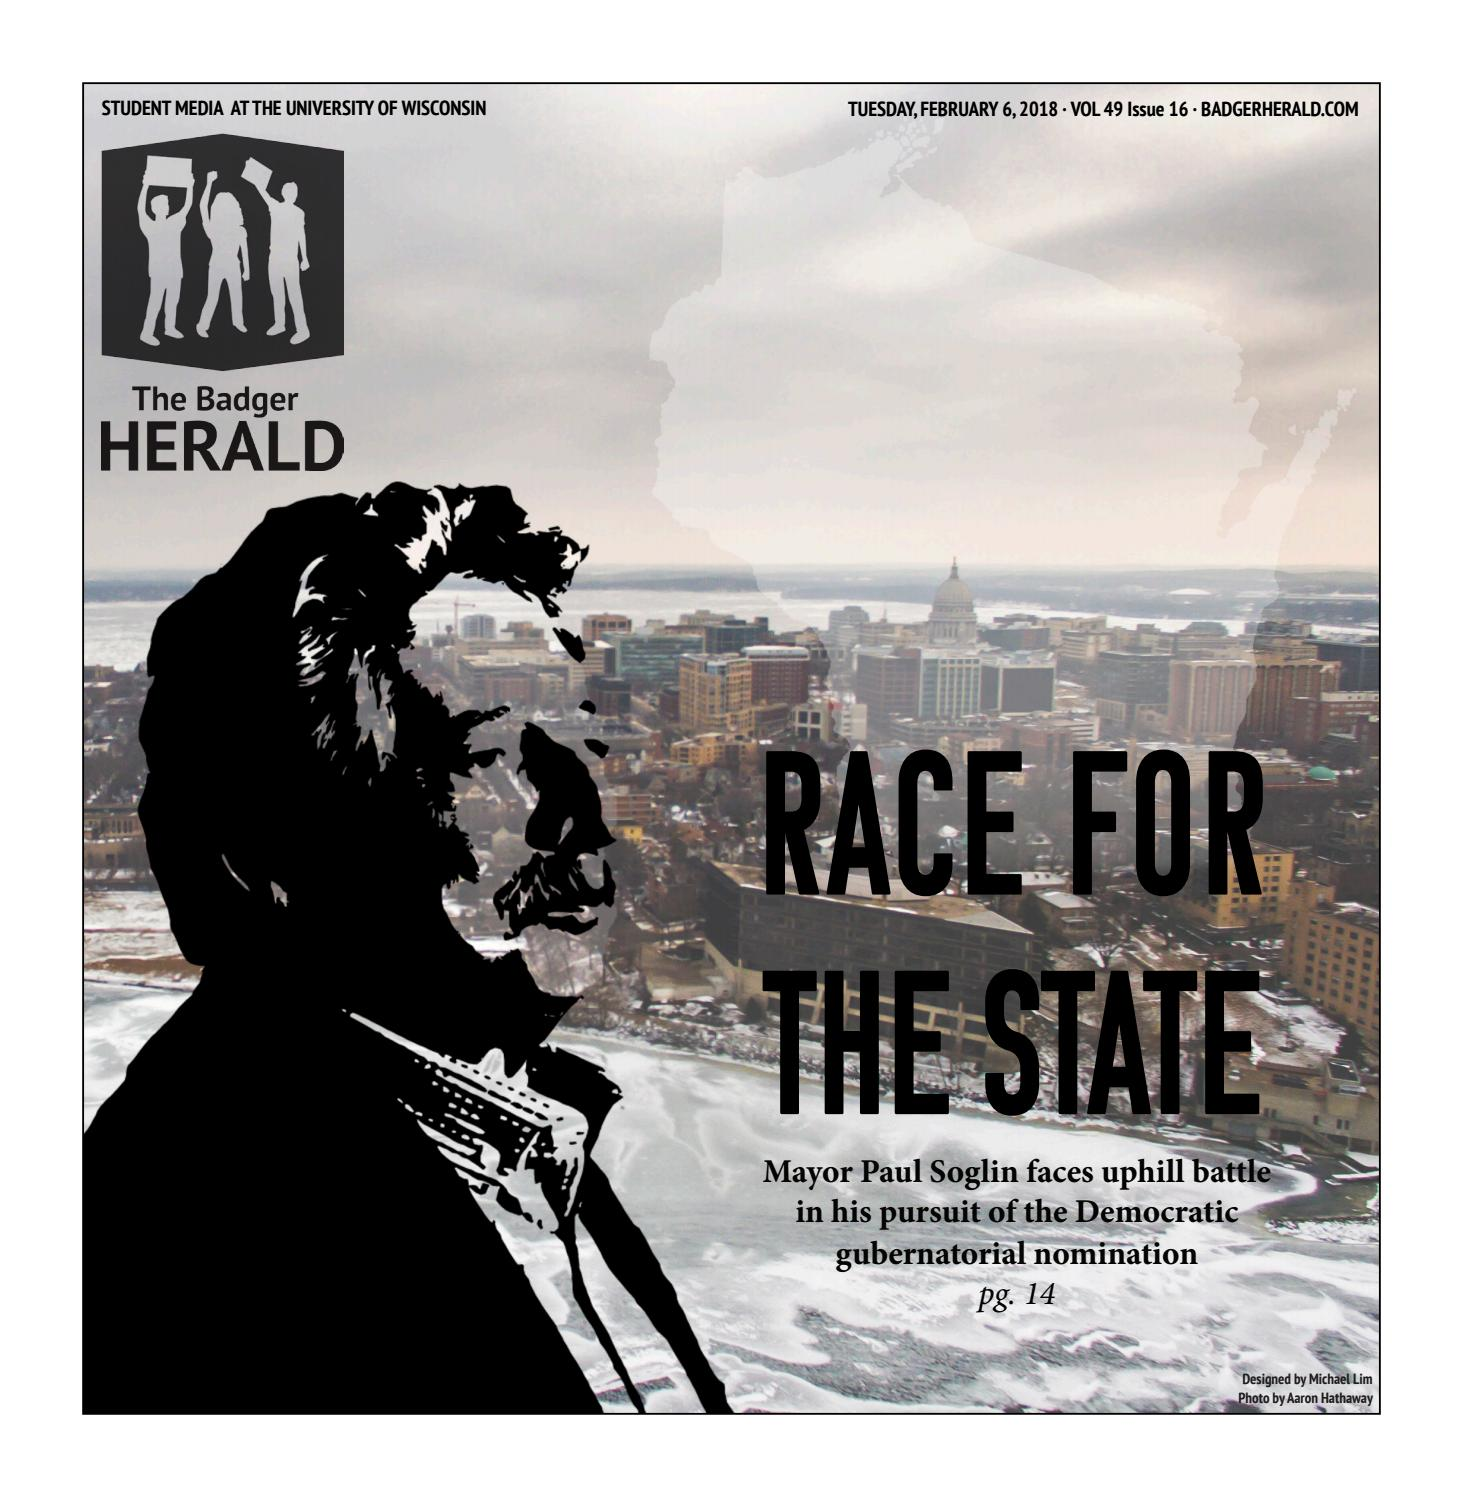 Quick Someone Give Paul Soglin Bag Of >> Race For The State Volume 49 Issue 16 By The Badger Herald Issuu